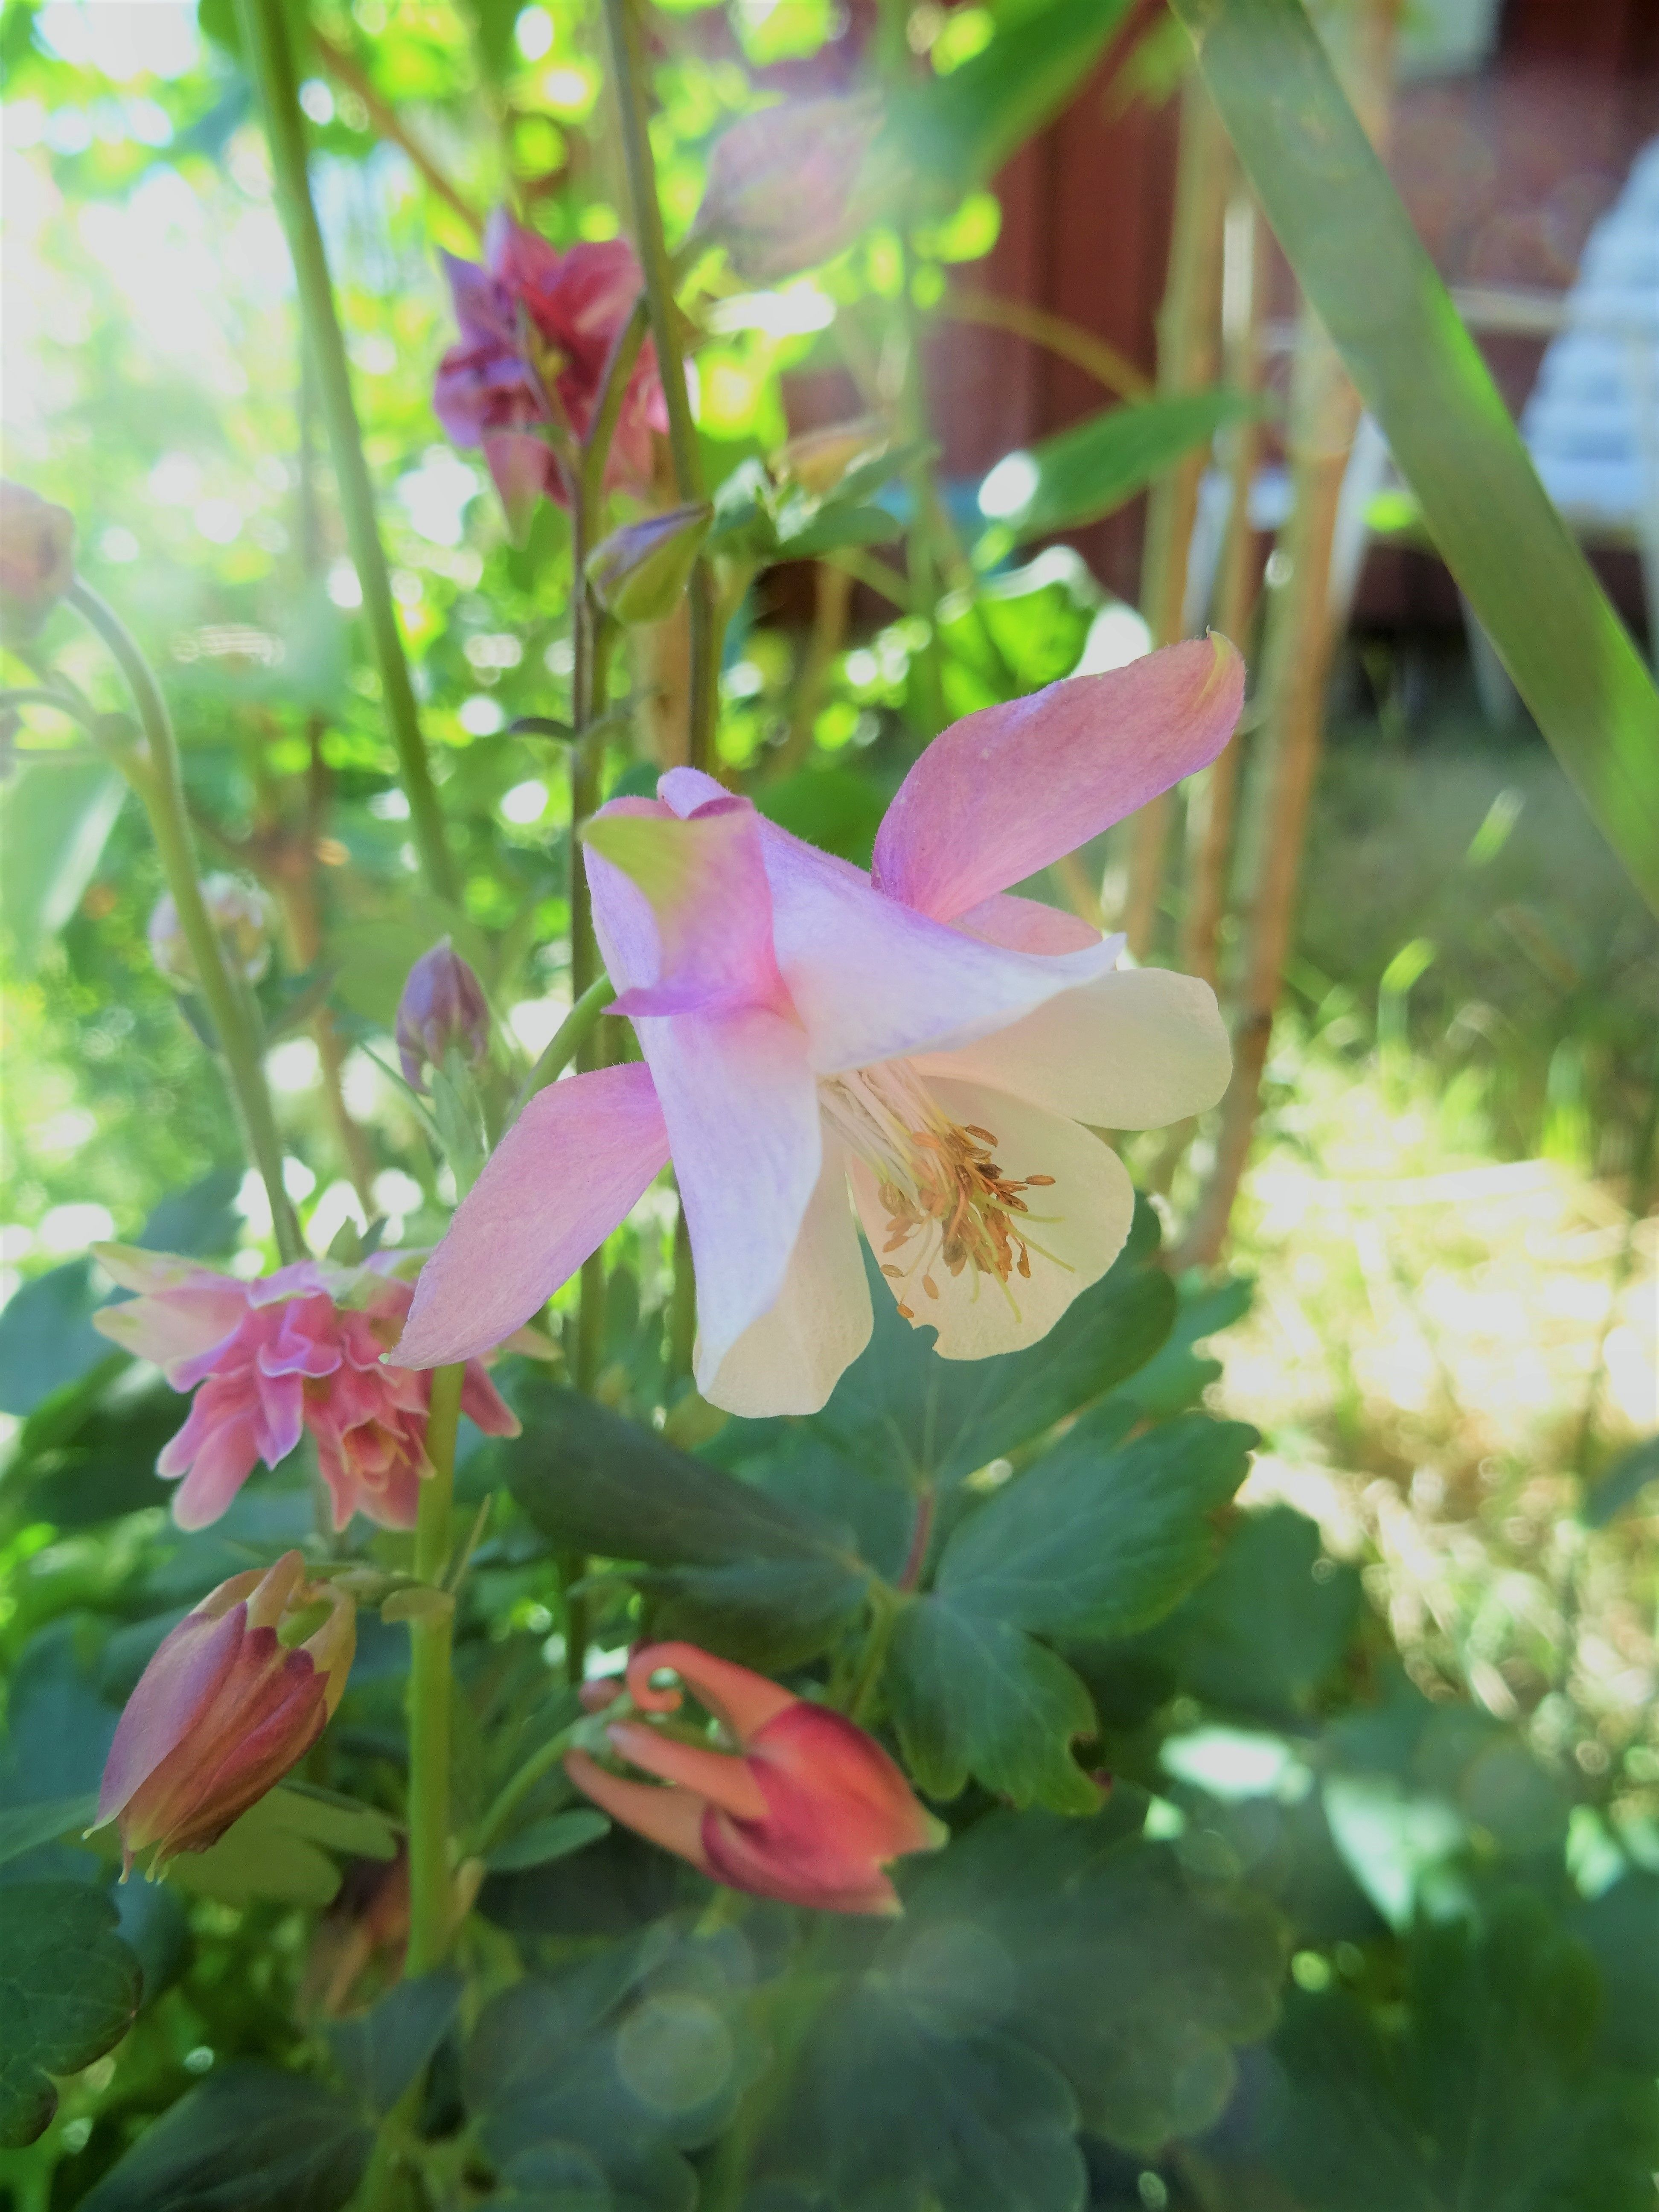 Aquilegia A Low Growing Specimen With Red Buds But Pale Pink And